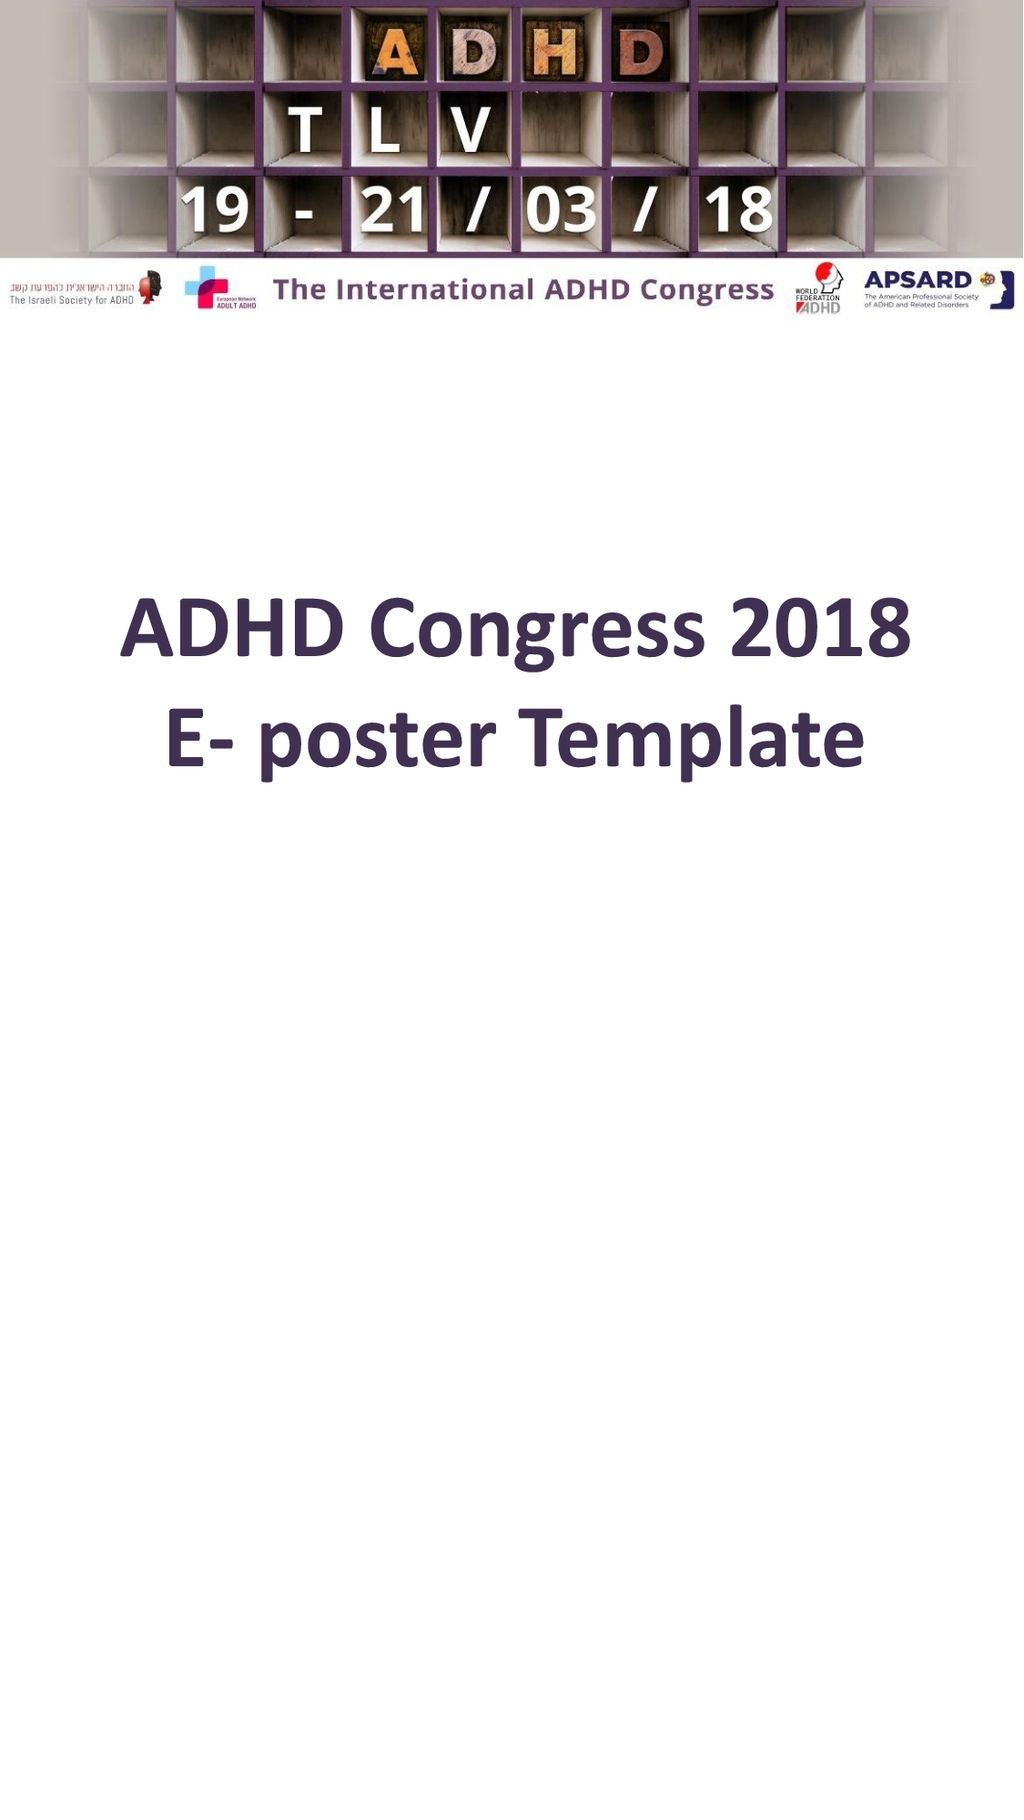 adhd congress 2018 e poster template ppt download